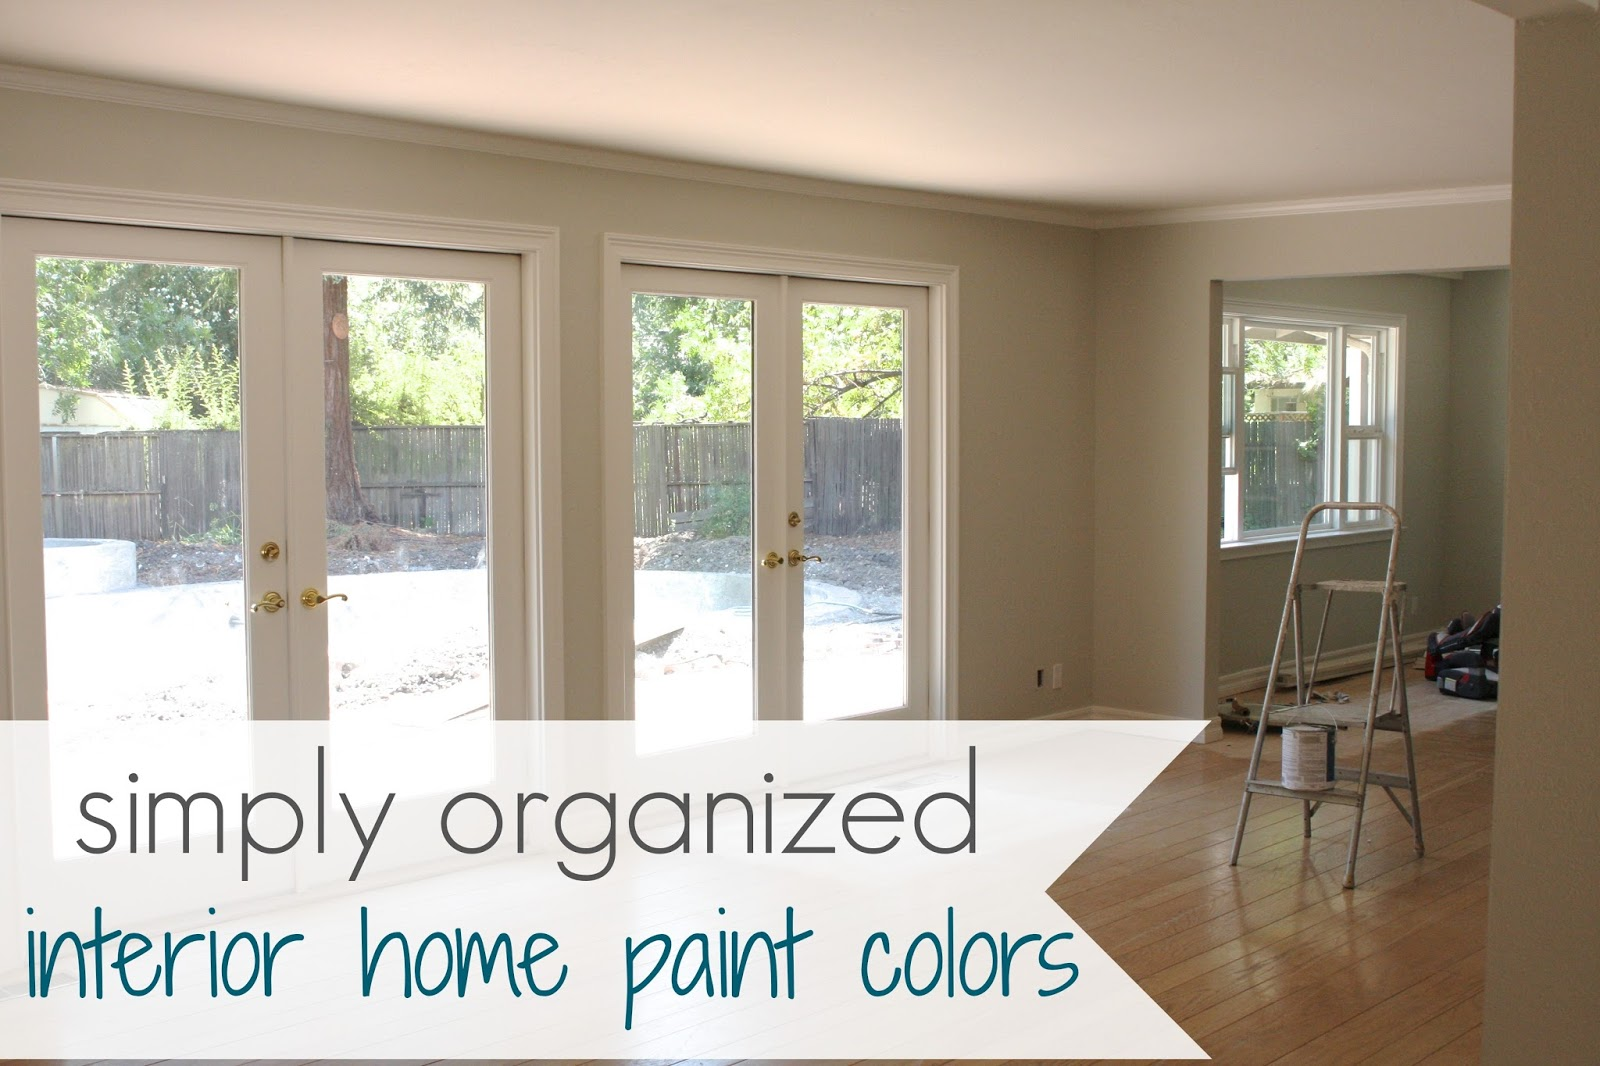 My home interior paint color palate simply organized Home interior paint schemes